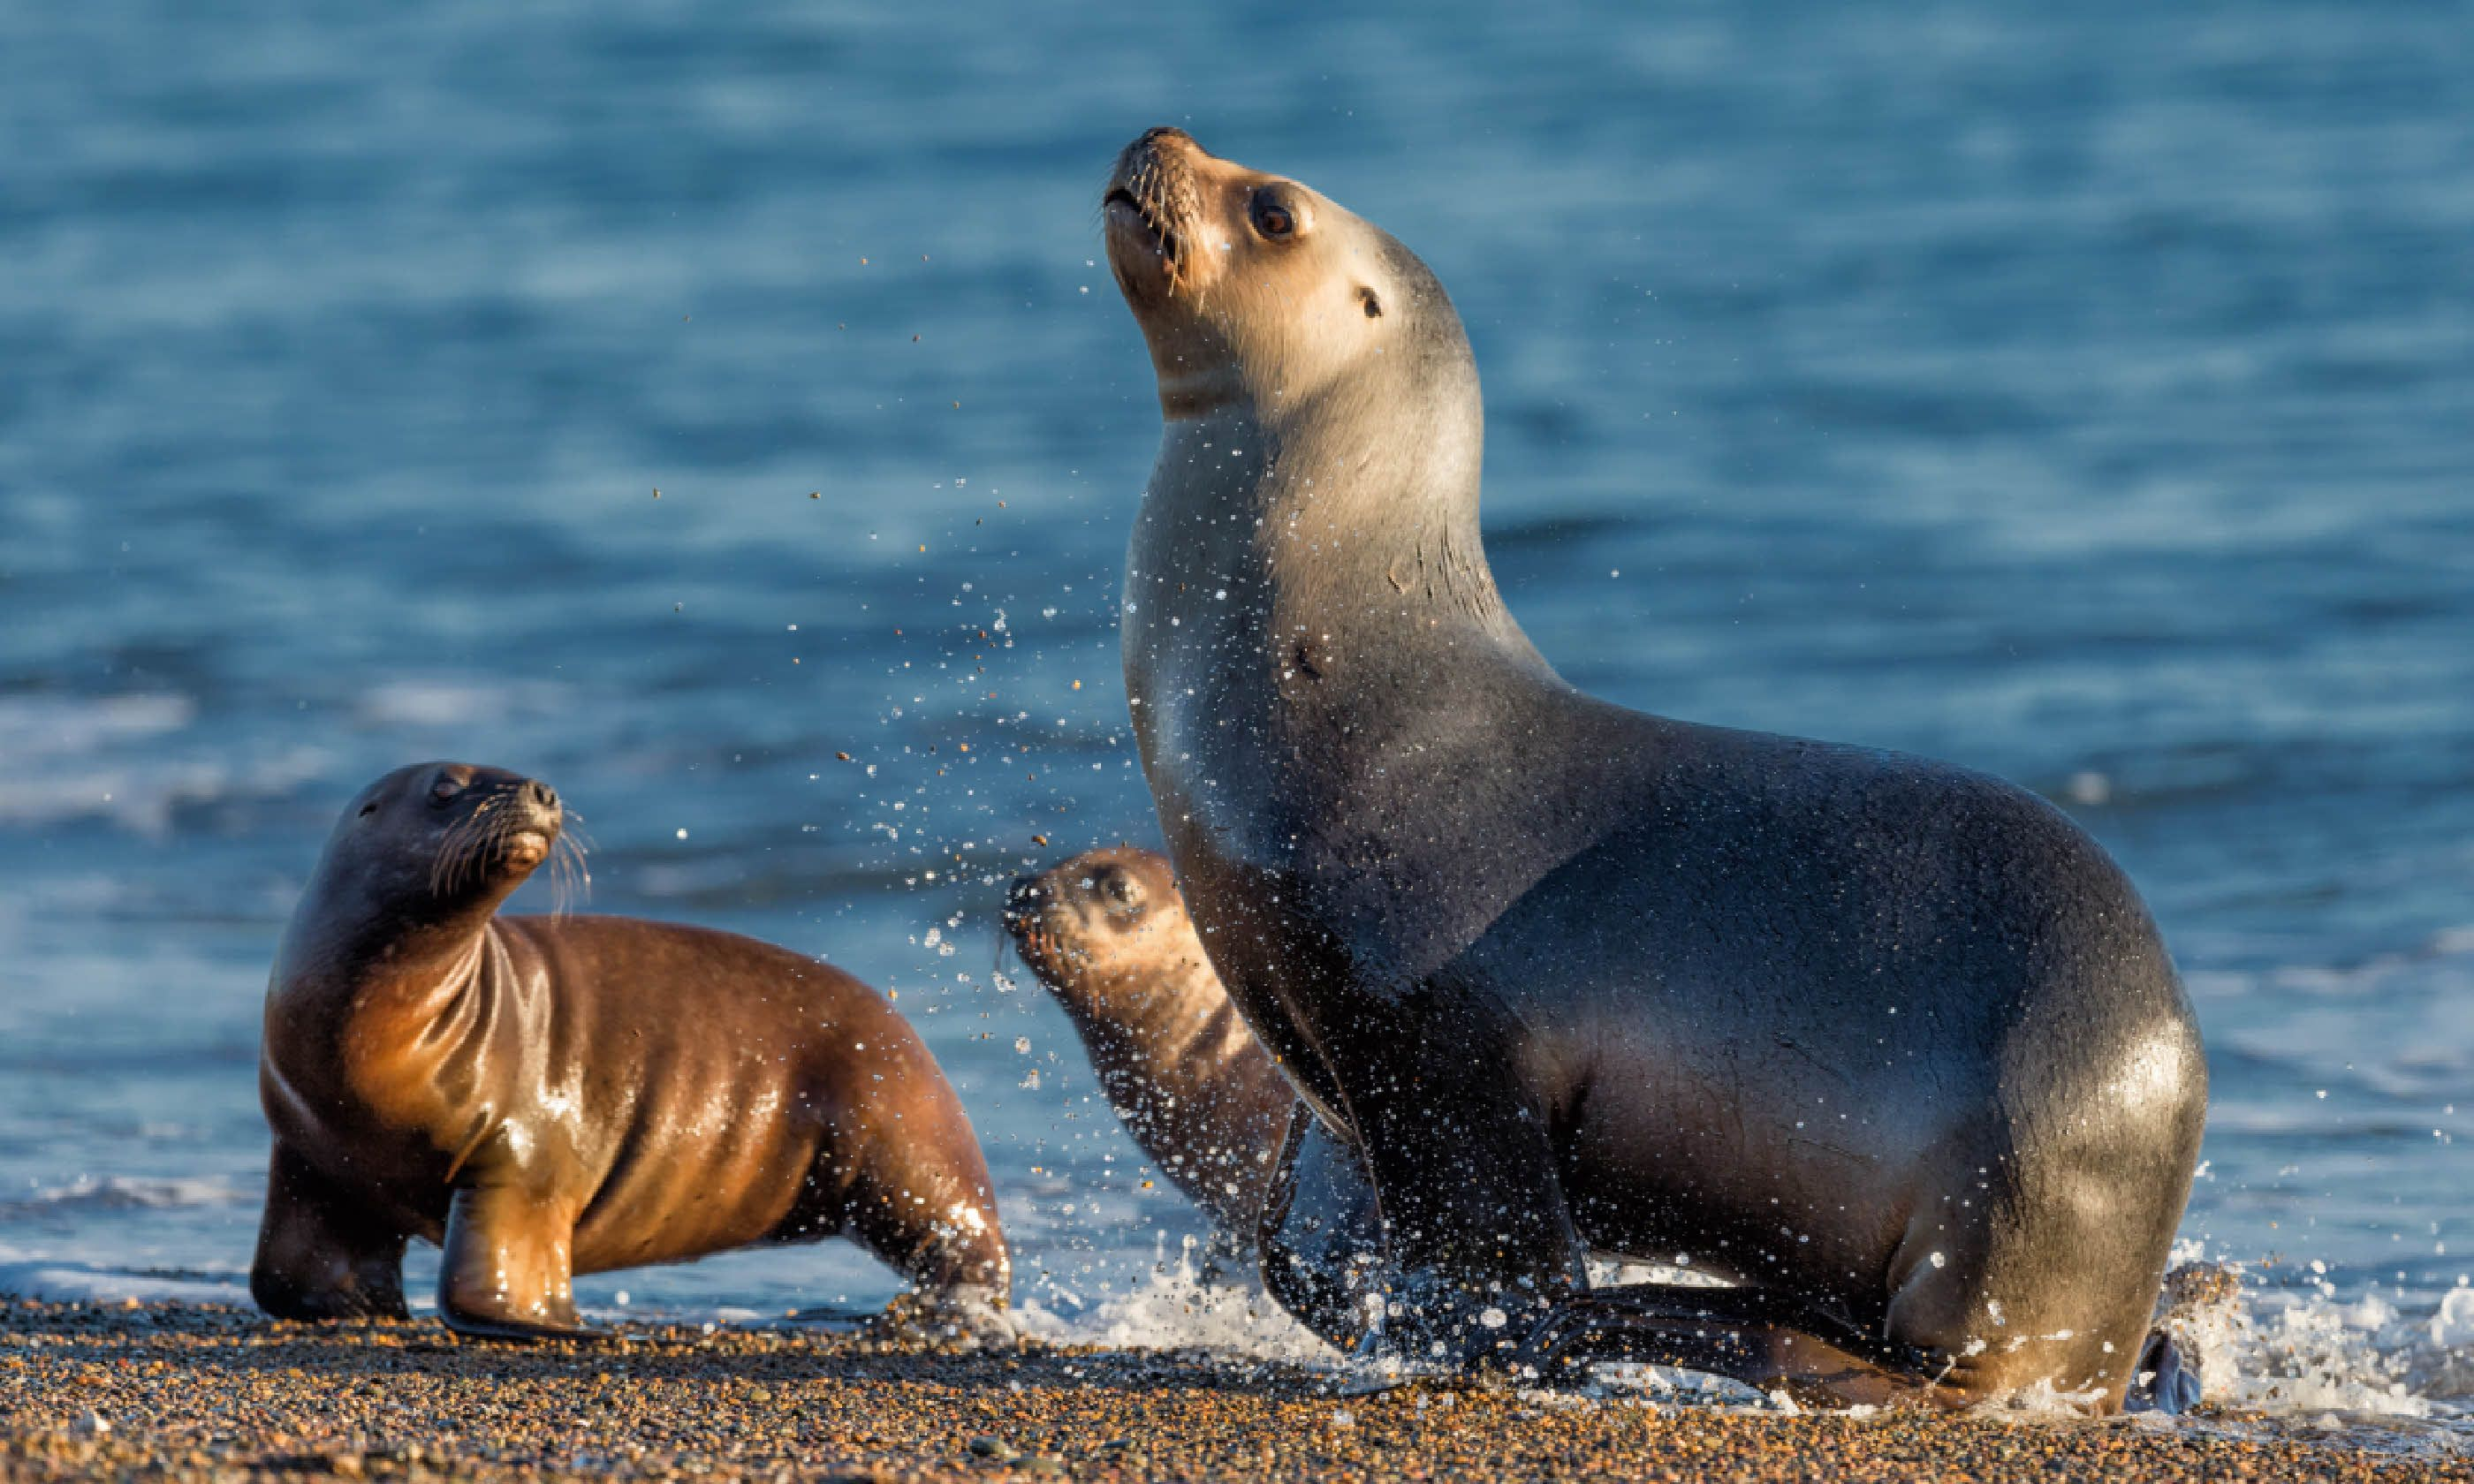 Patagonia sea lion running on the beach (Shutterstock)